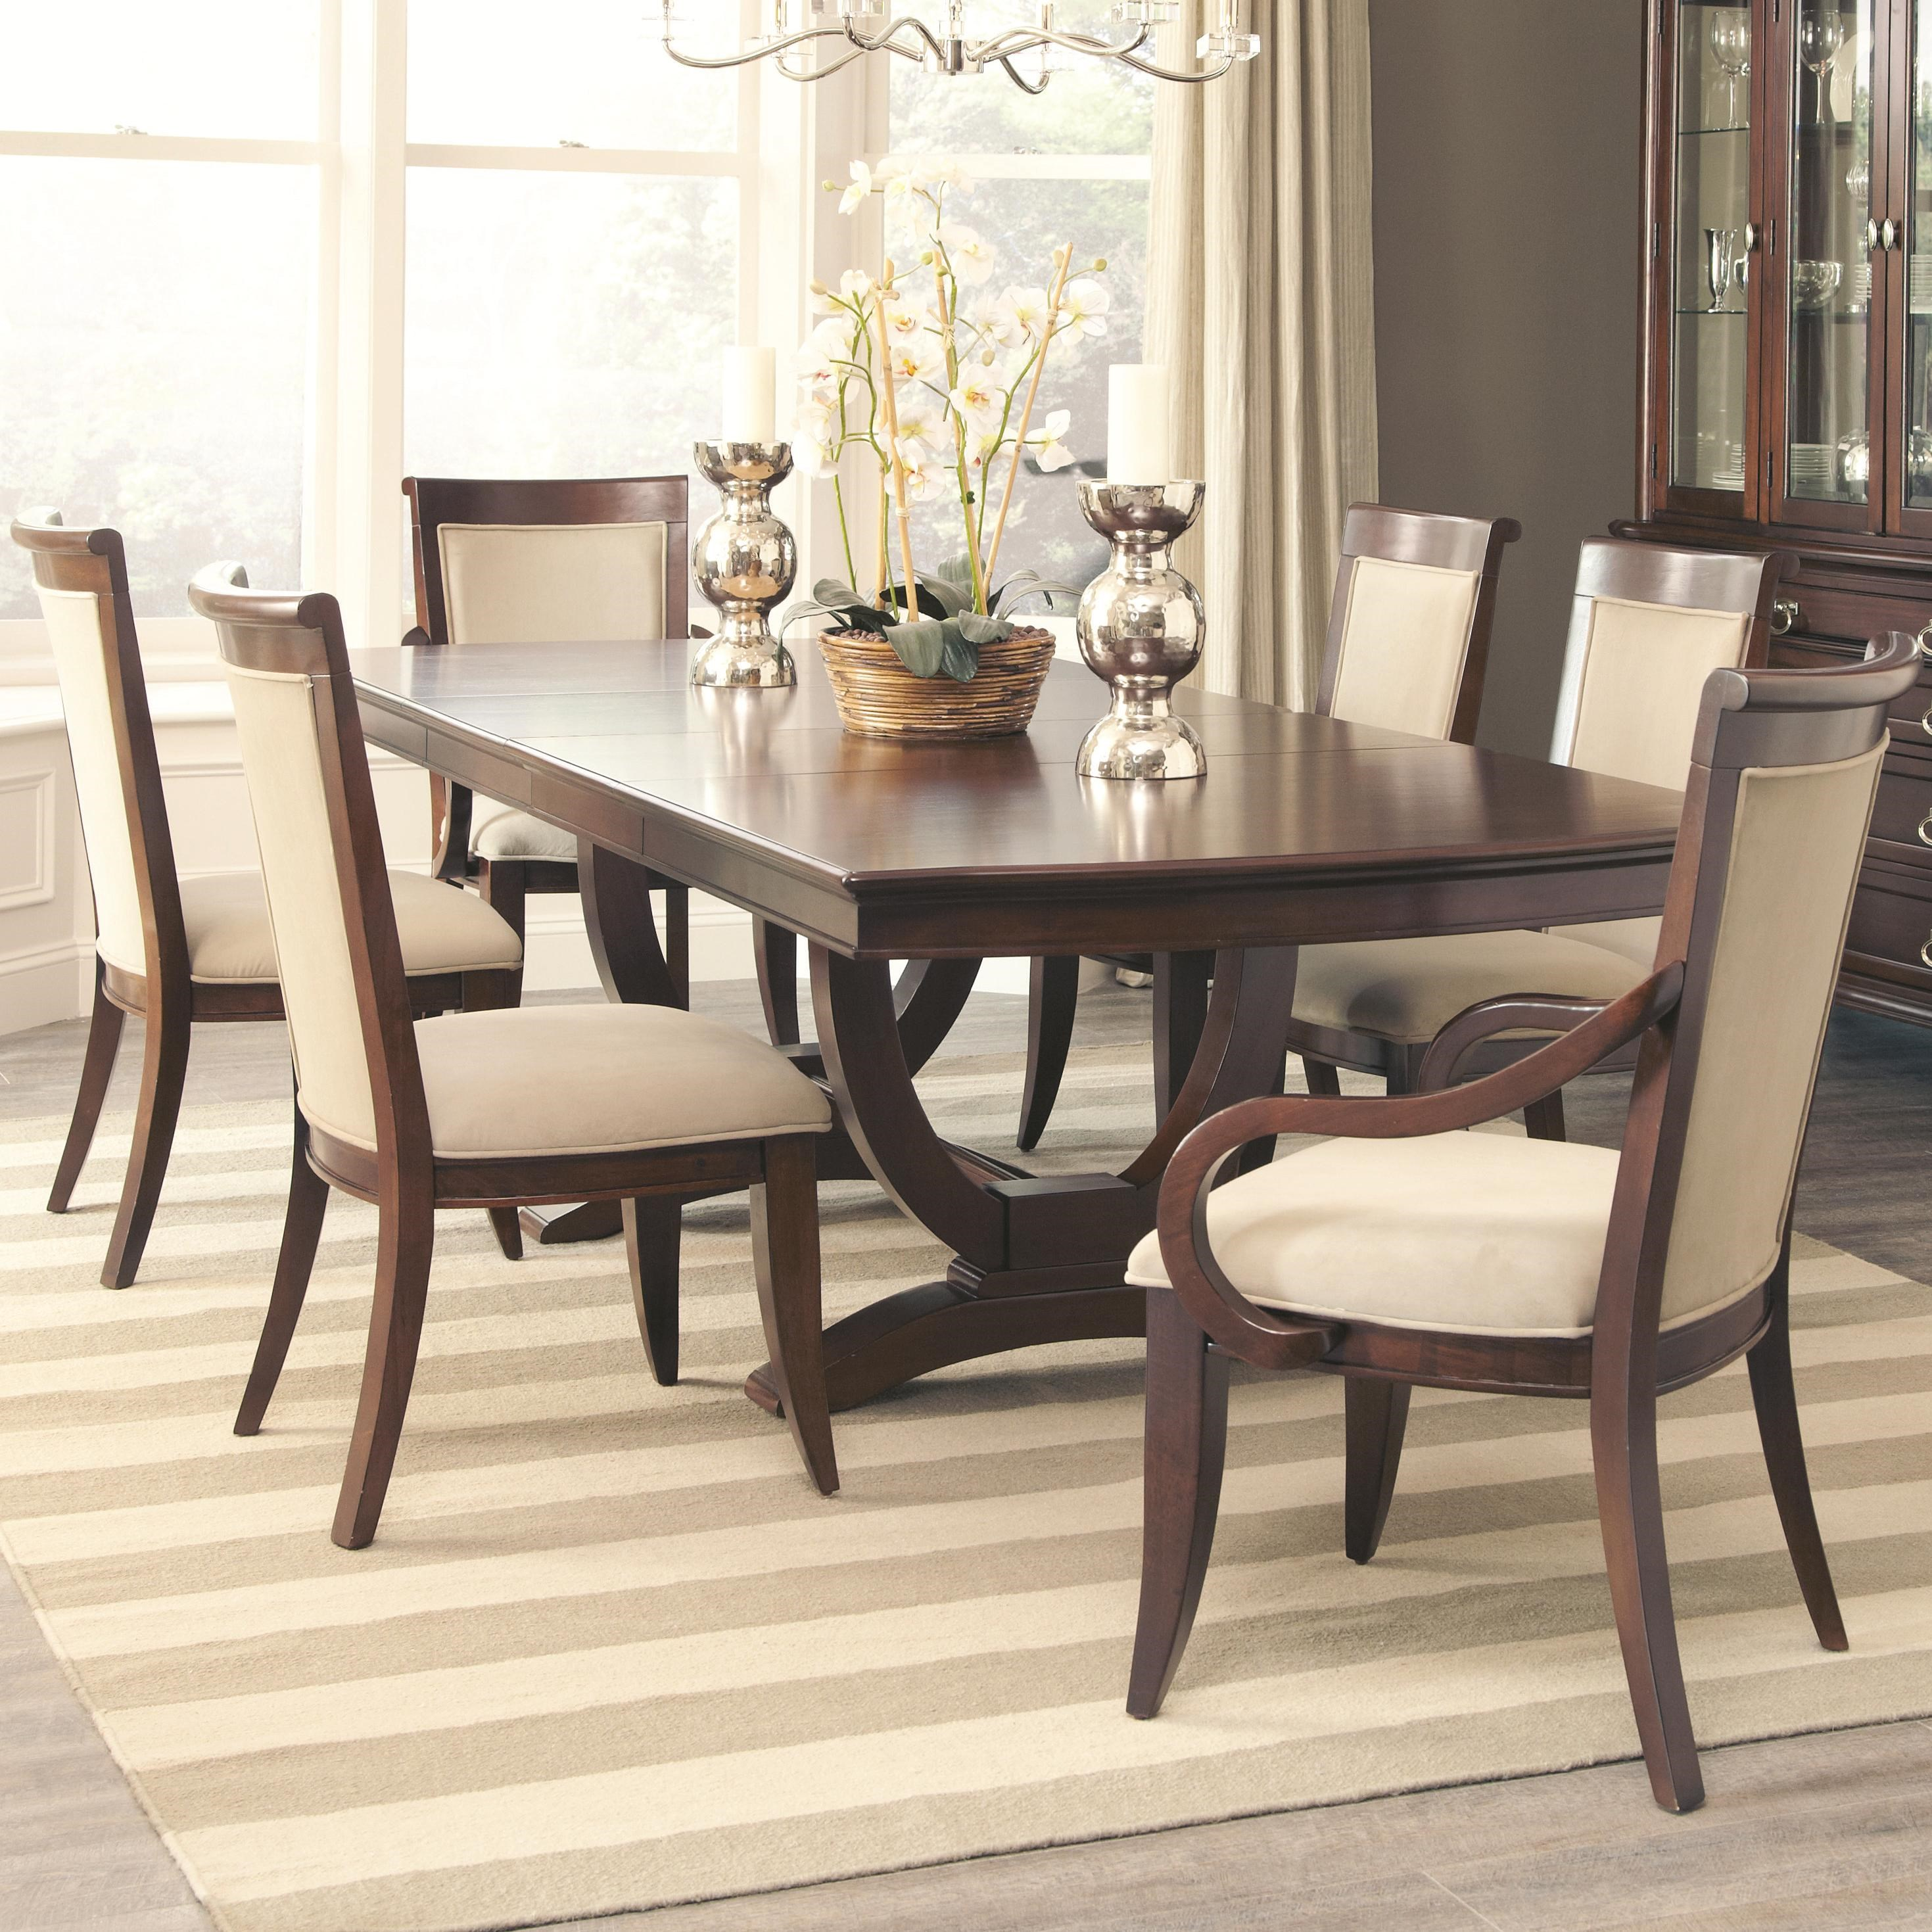 Alyssa Dining Table And 4 Side Chair And 2 Arm Chair Set By Coaster